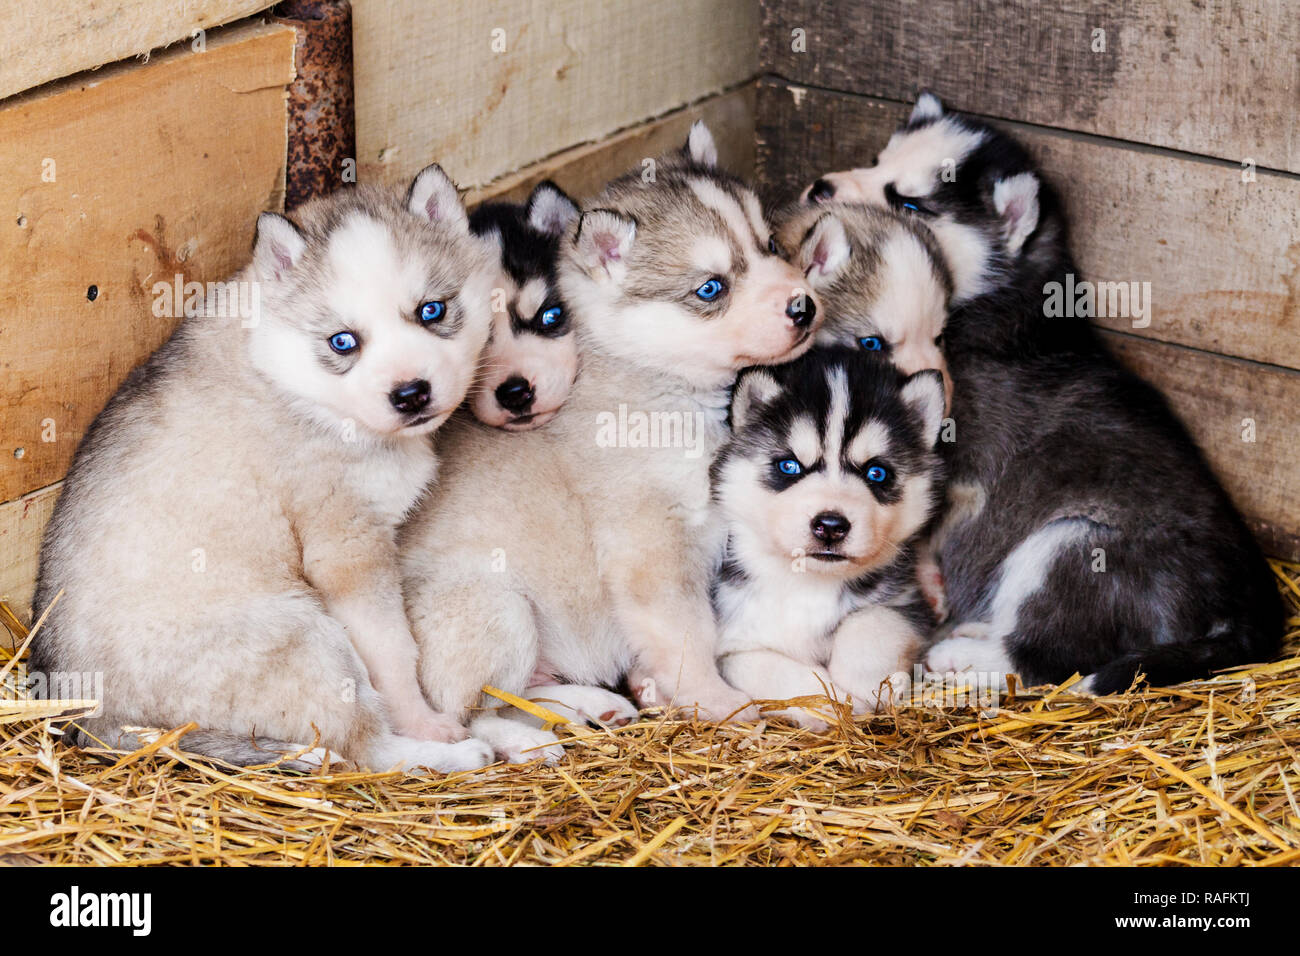 Husky Puppies With Blue Eyes In The Mother S Nest Pets Stock Photo Alamy